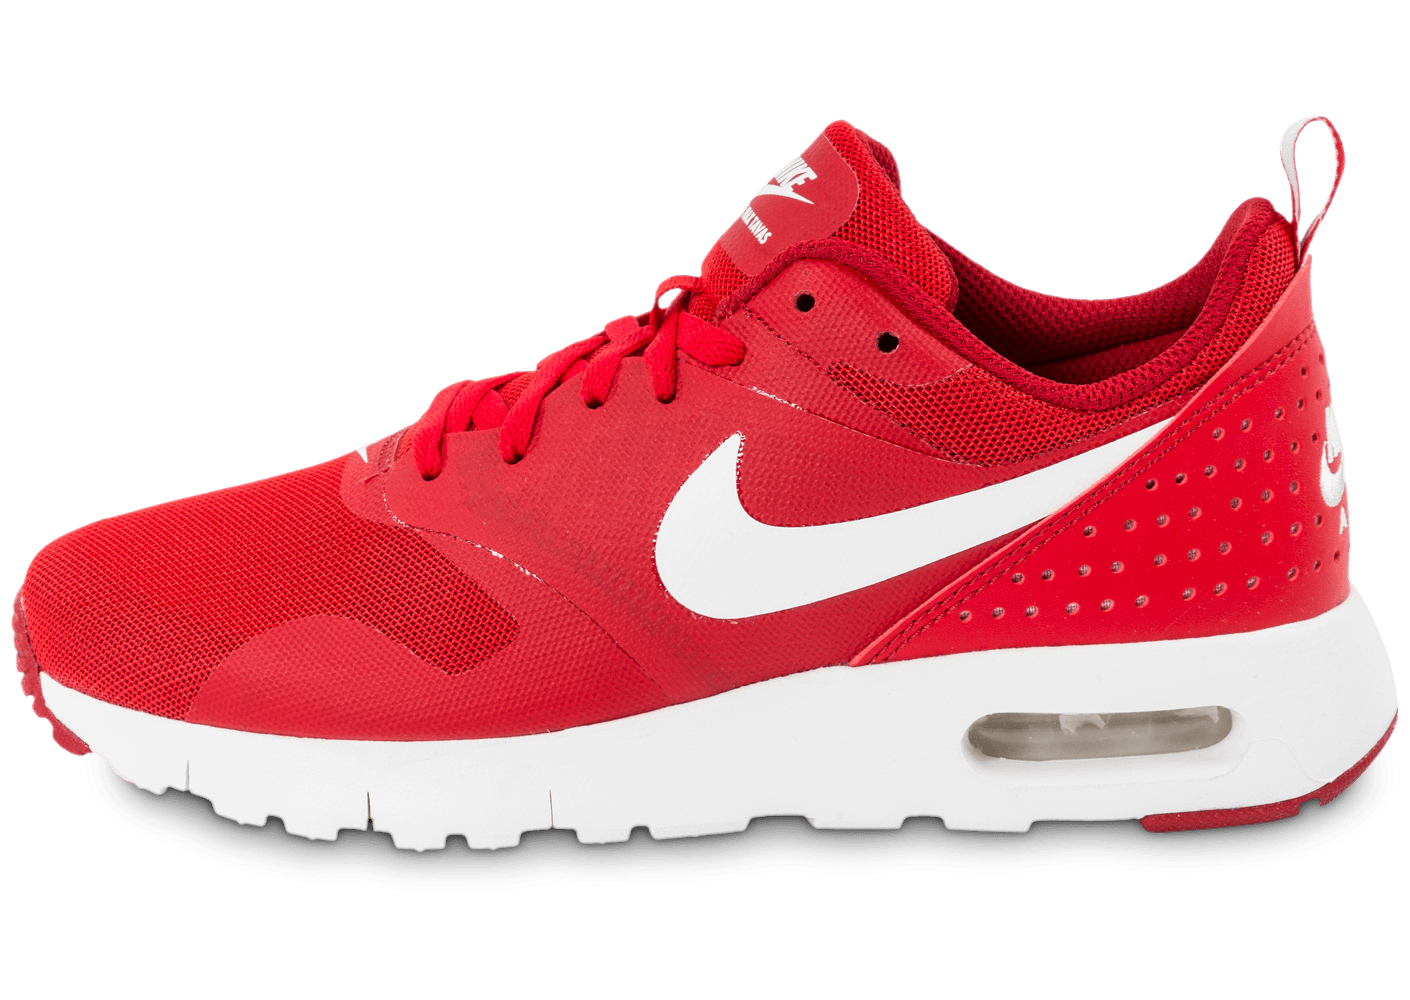 Junior Tavas Chausport Max Rouge Air Nike Chaussures EqzwtxP